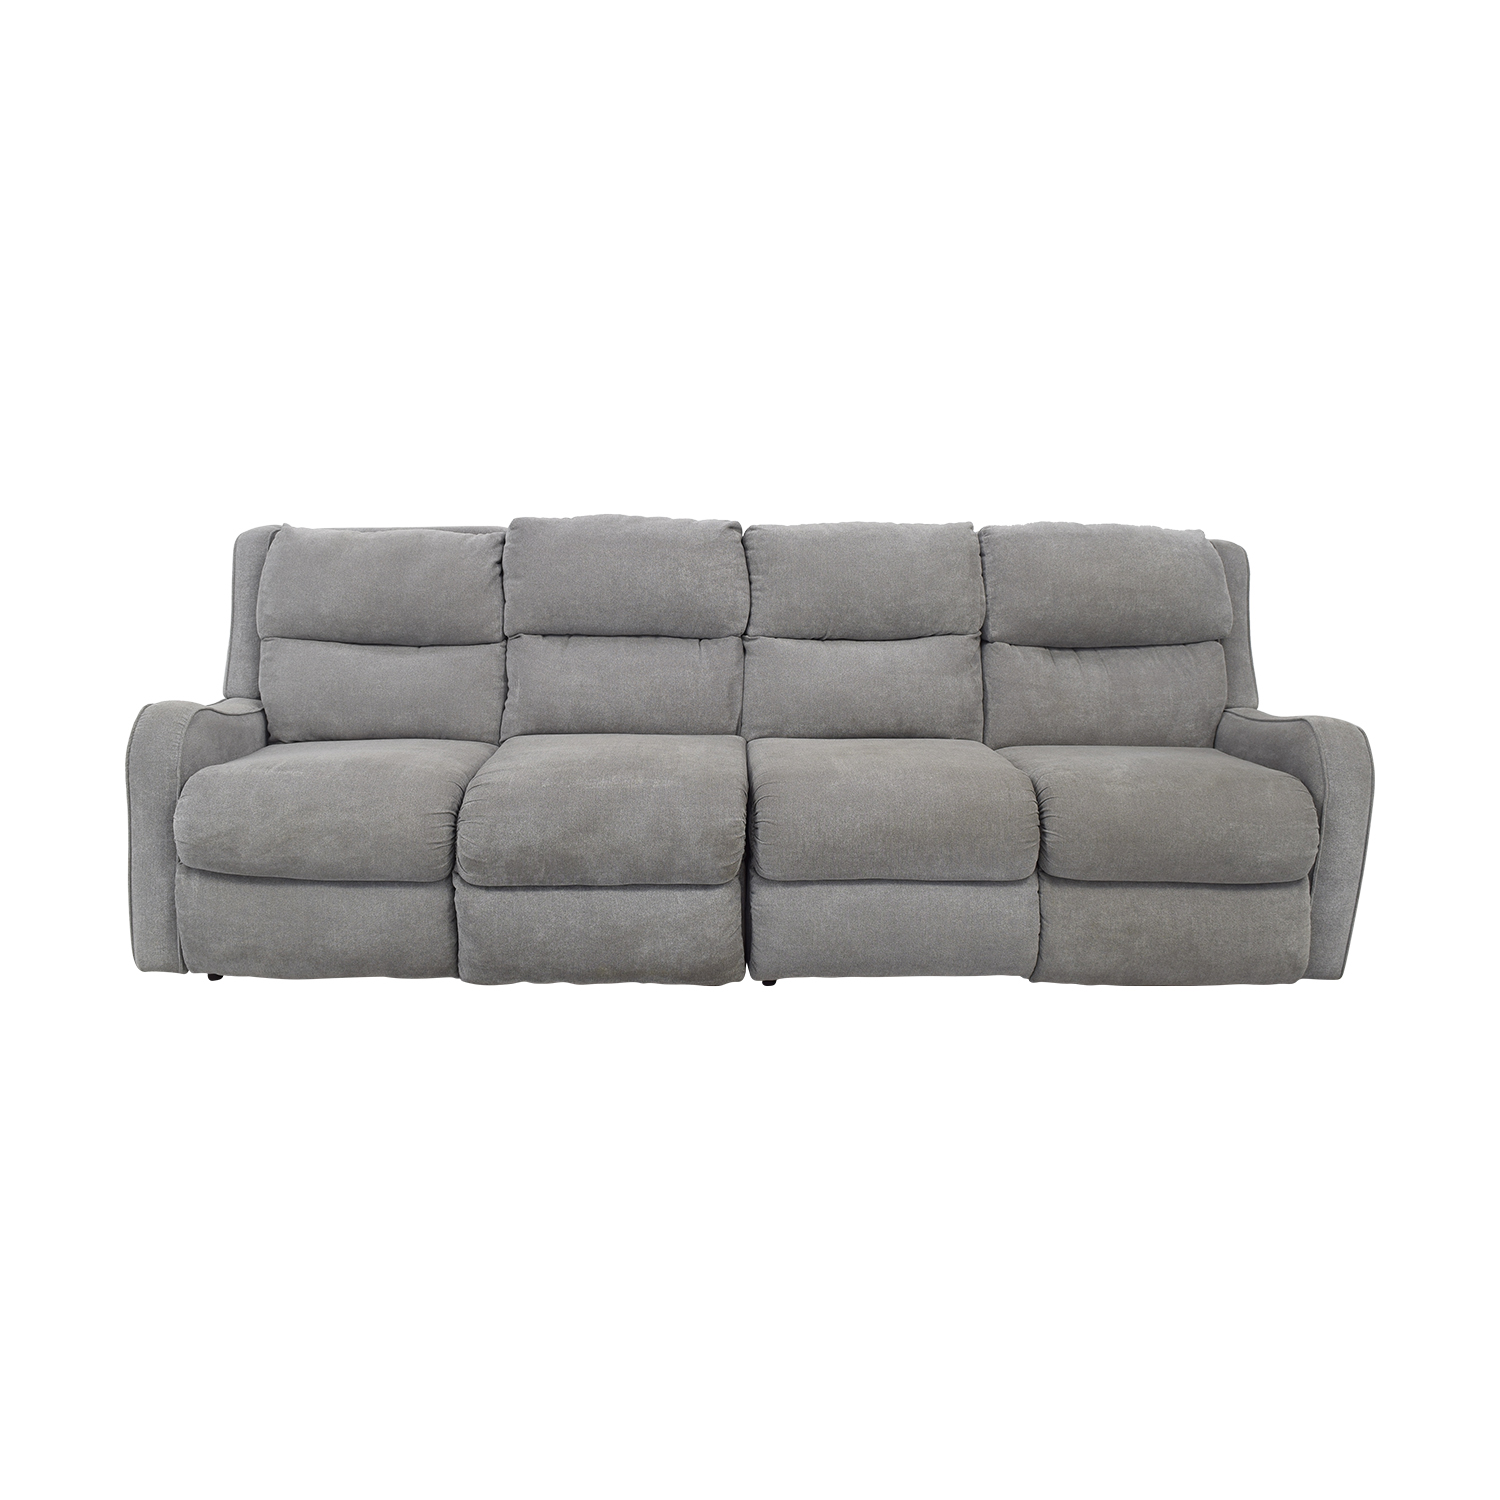 buy Raymour & Flanigan Lagamo Sectional Sofa Raymour & Flanigan Sectionals